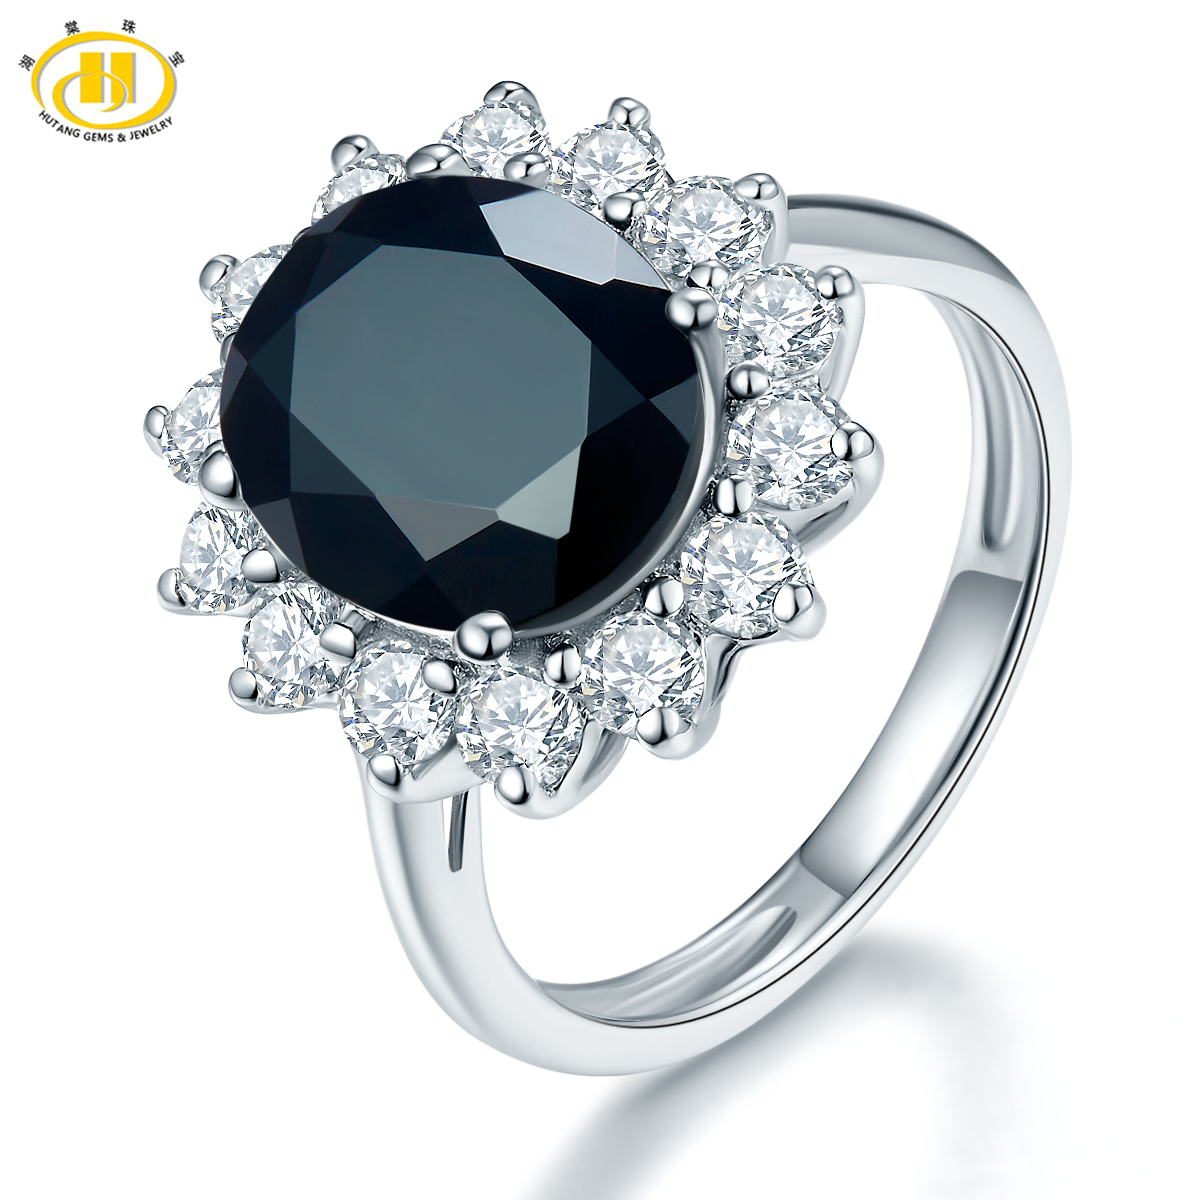 Hutang Classic Style Natural Black Spinel & Zircon Halo Ring Solid 925 Sterling Silver Gemstone Fine Jewelry For Women Party